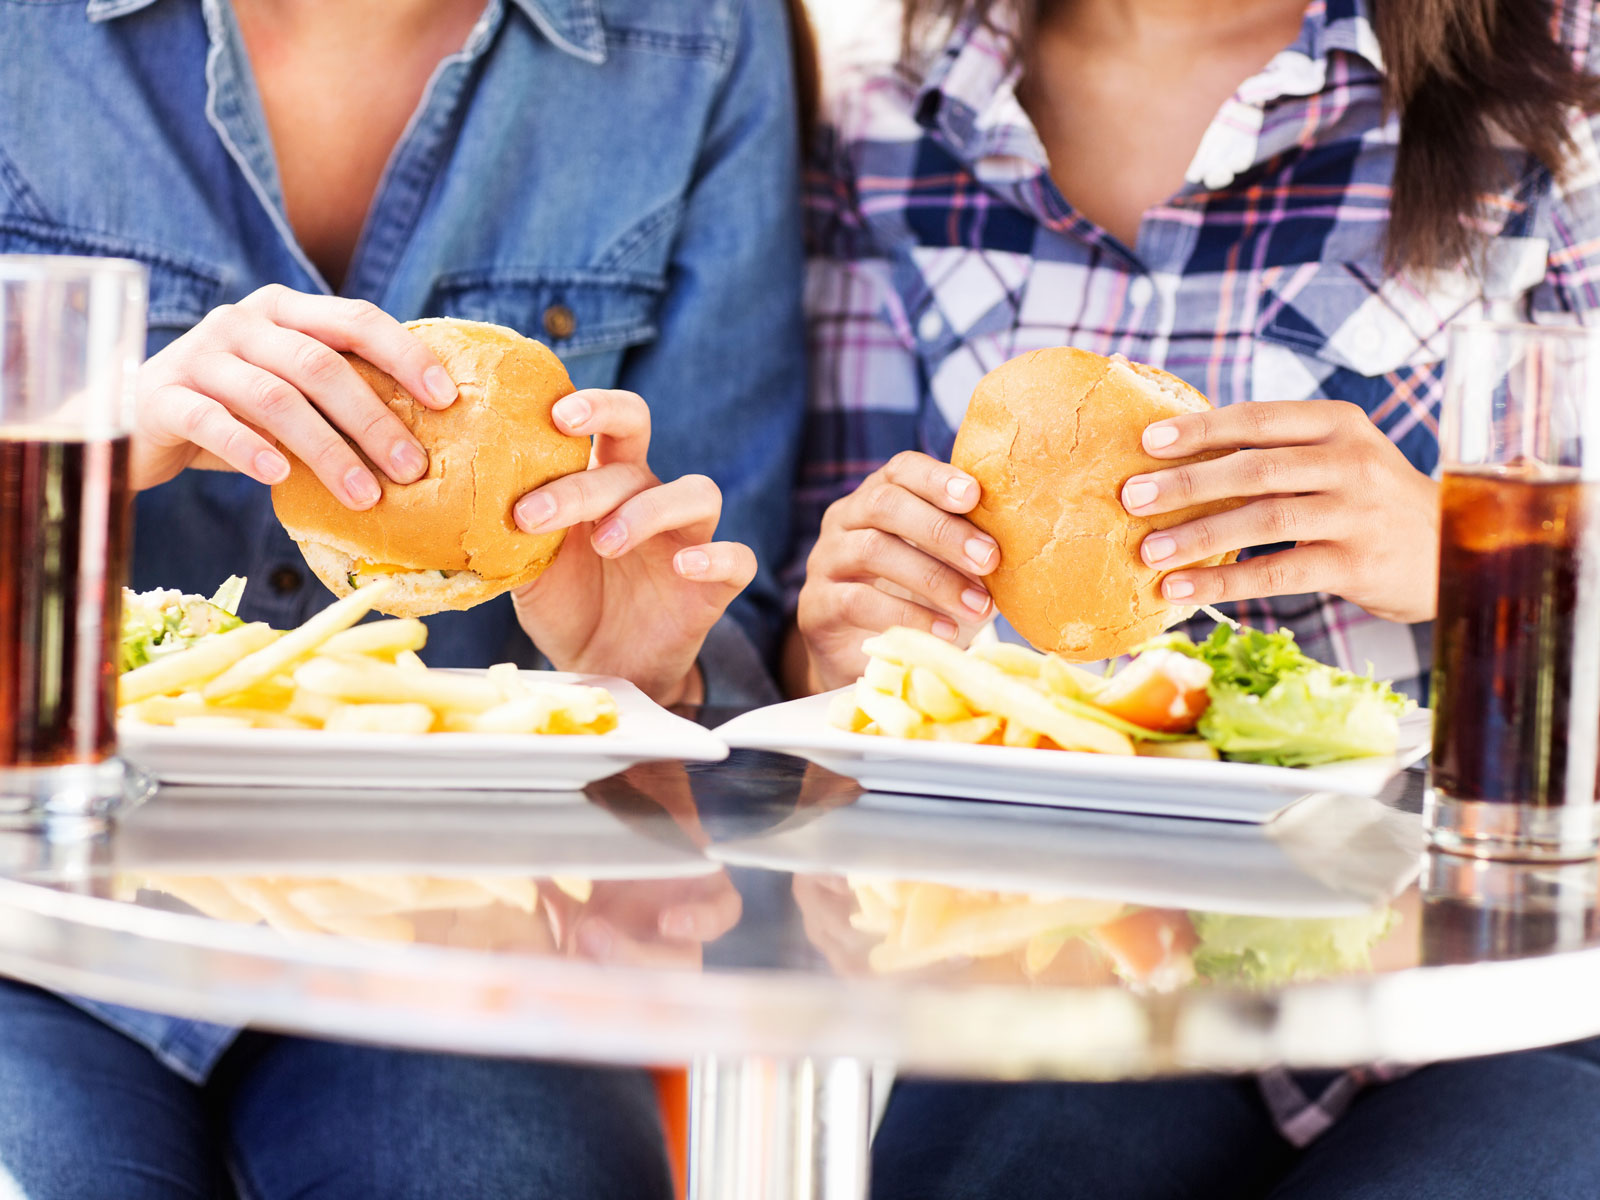 Over Half of Generation Z Has Eaten at McDonald's in the Past Six Months